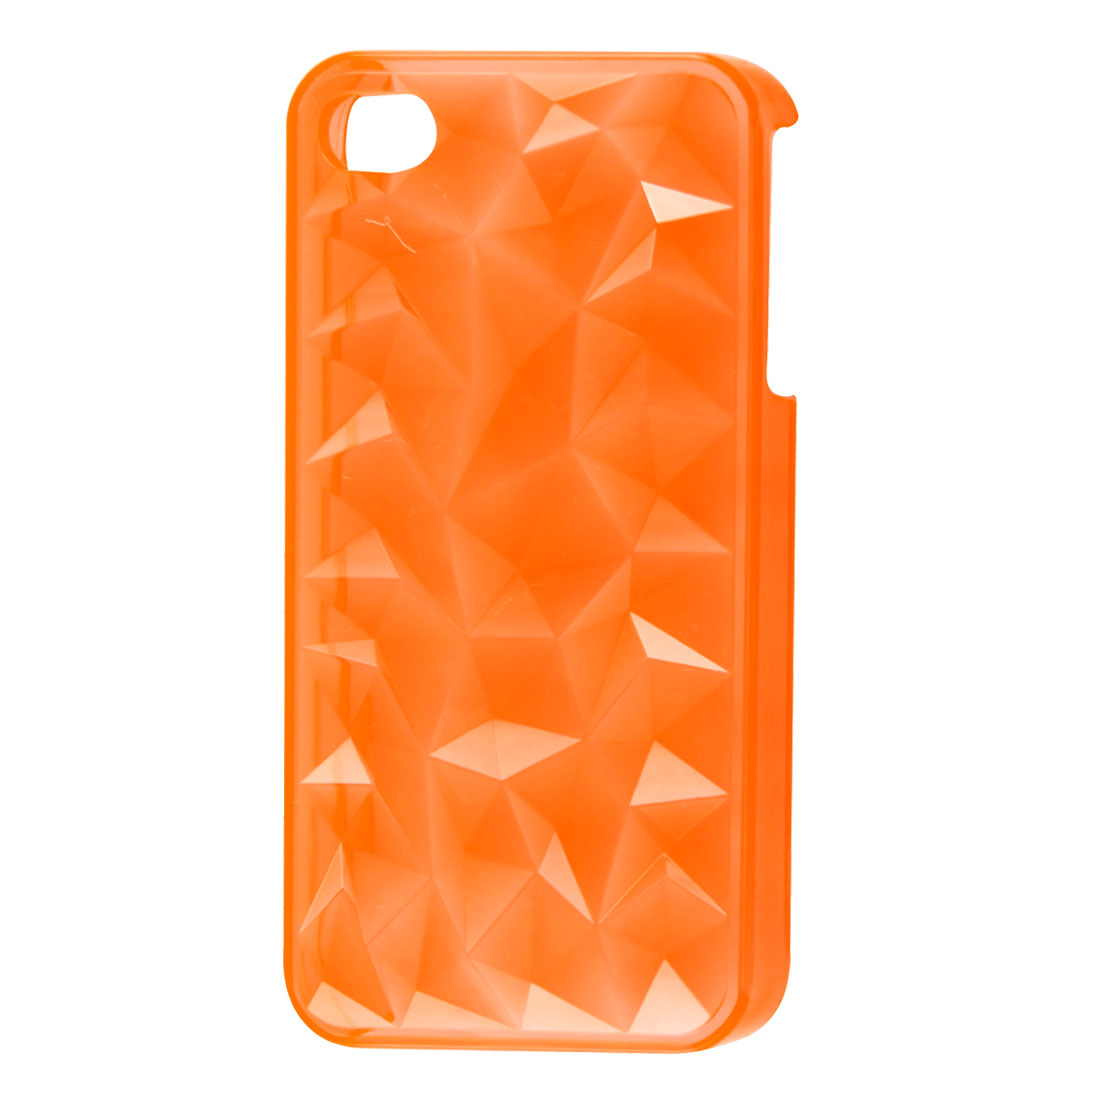 Water Cube Surface Clear Orange Plastic Back Case Shell for iPhone 4 4S 4GS